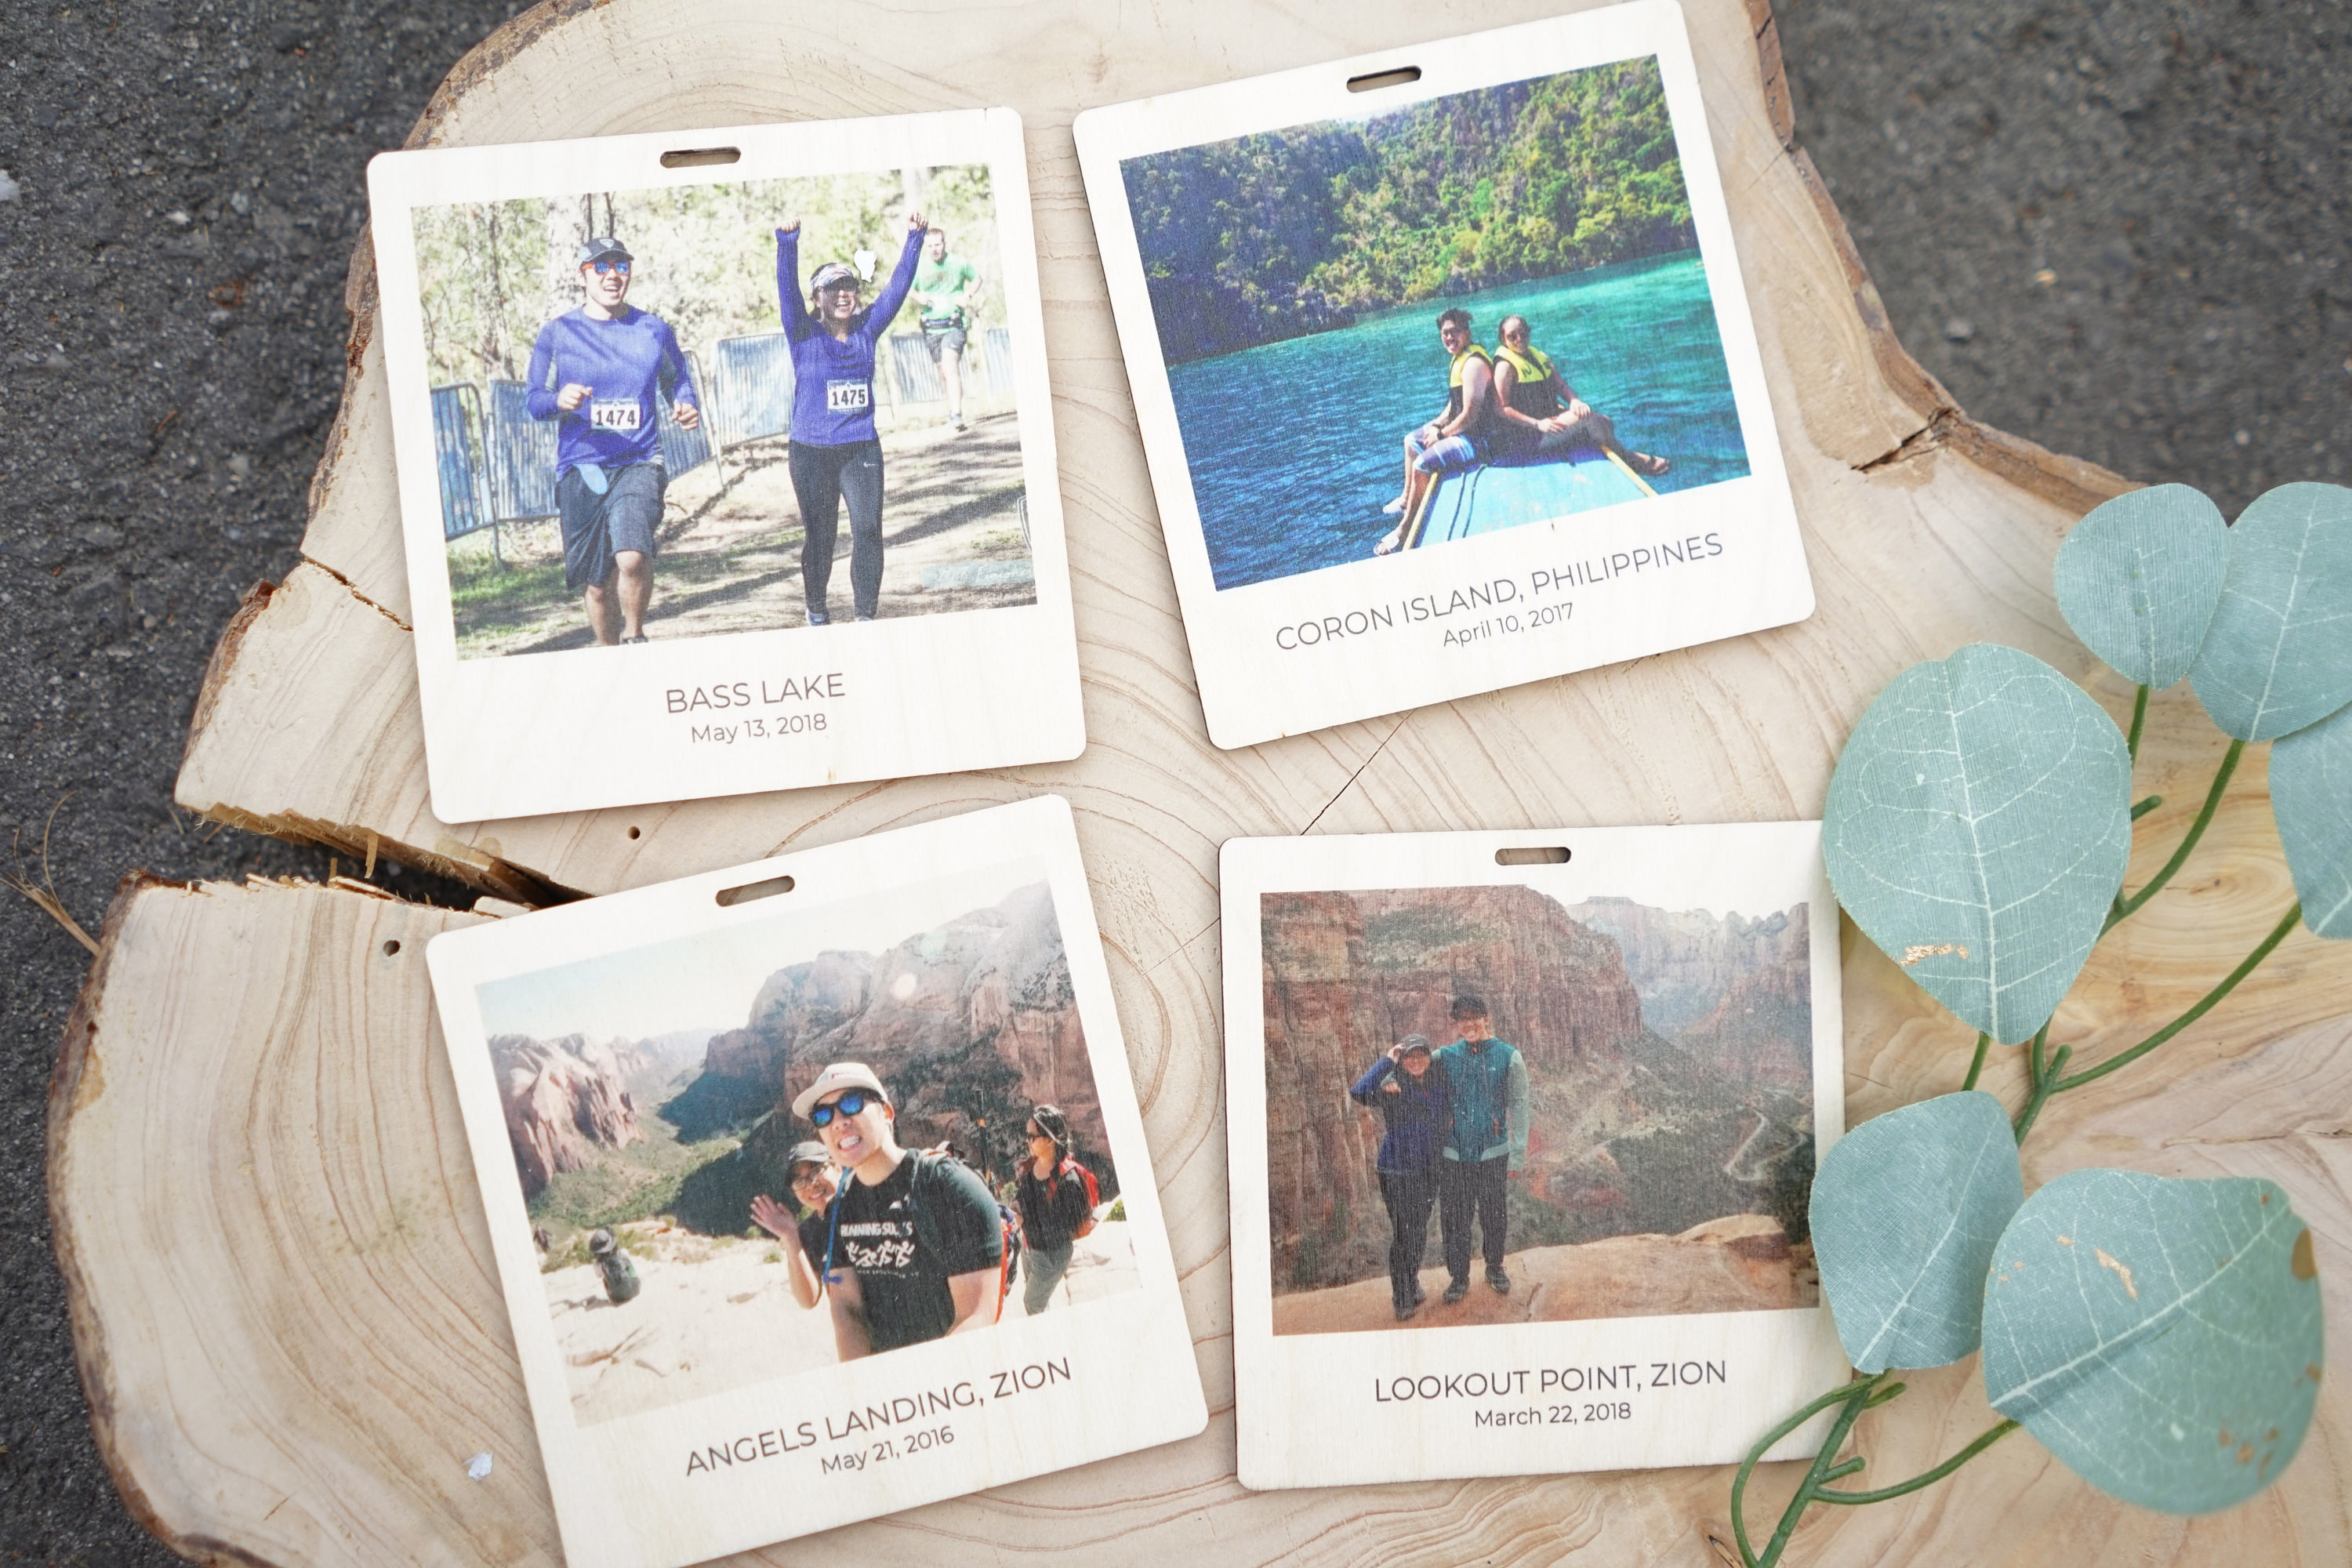 four personalized coasters featuring photos, location names, and dates